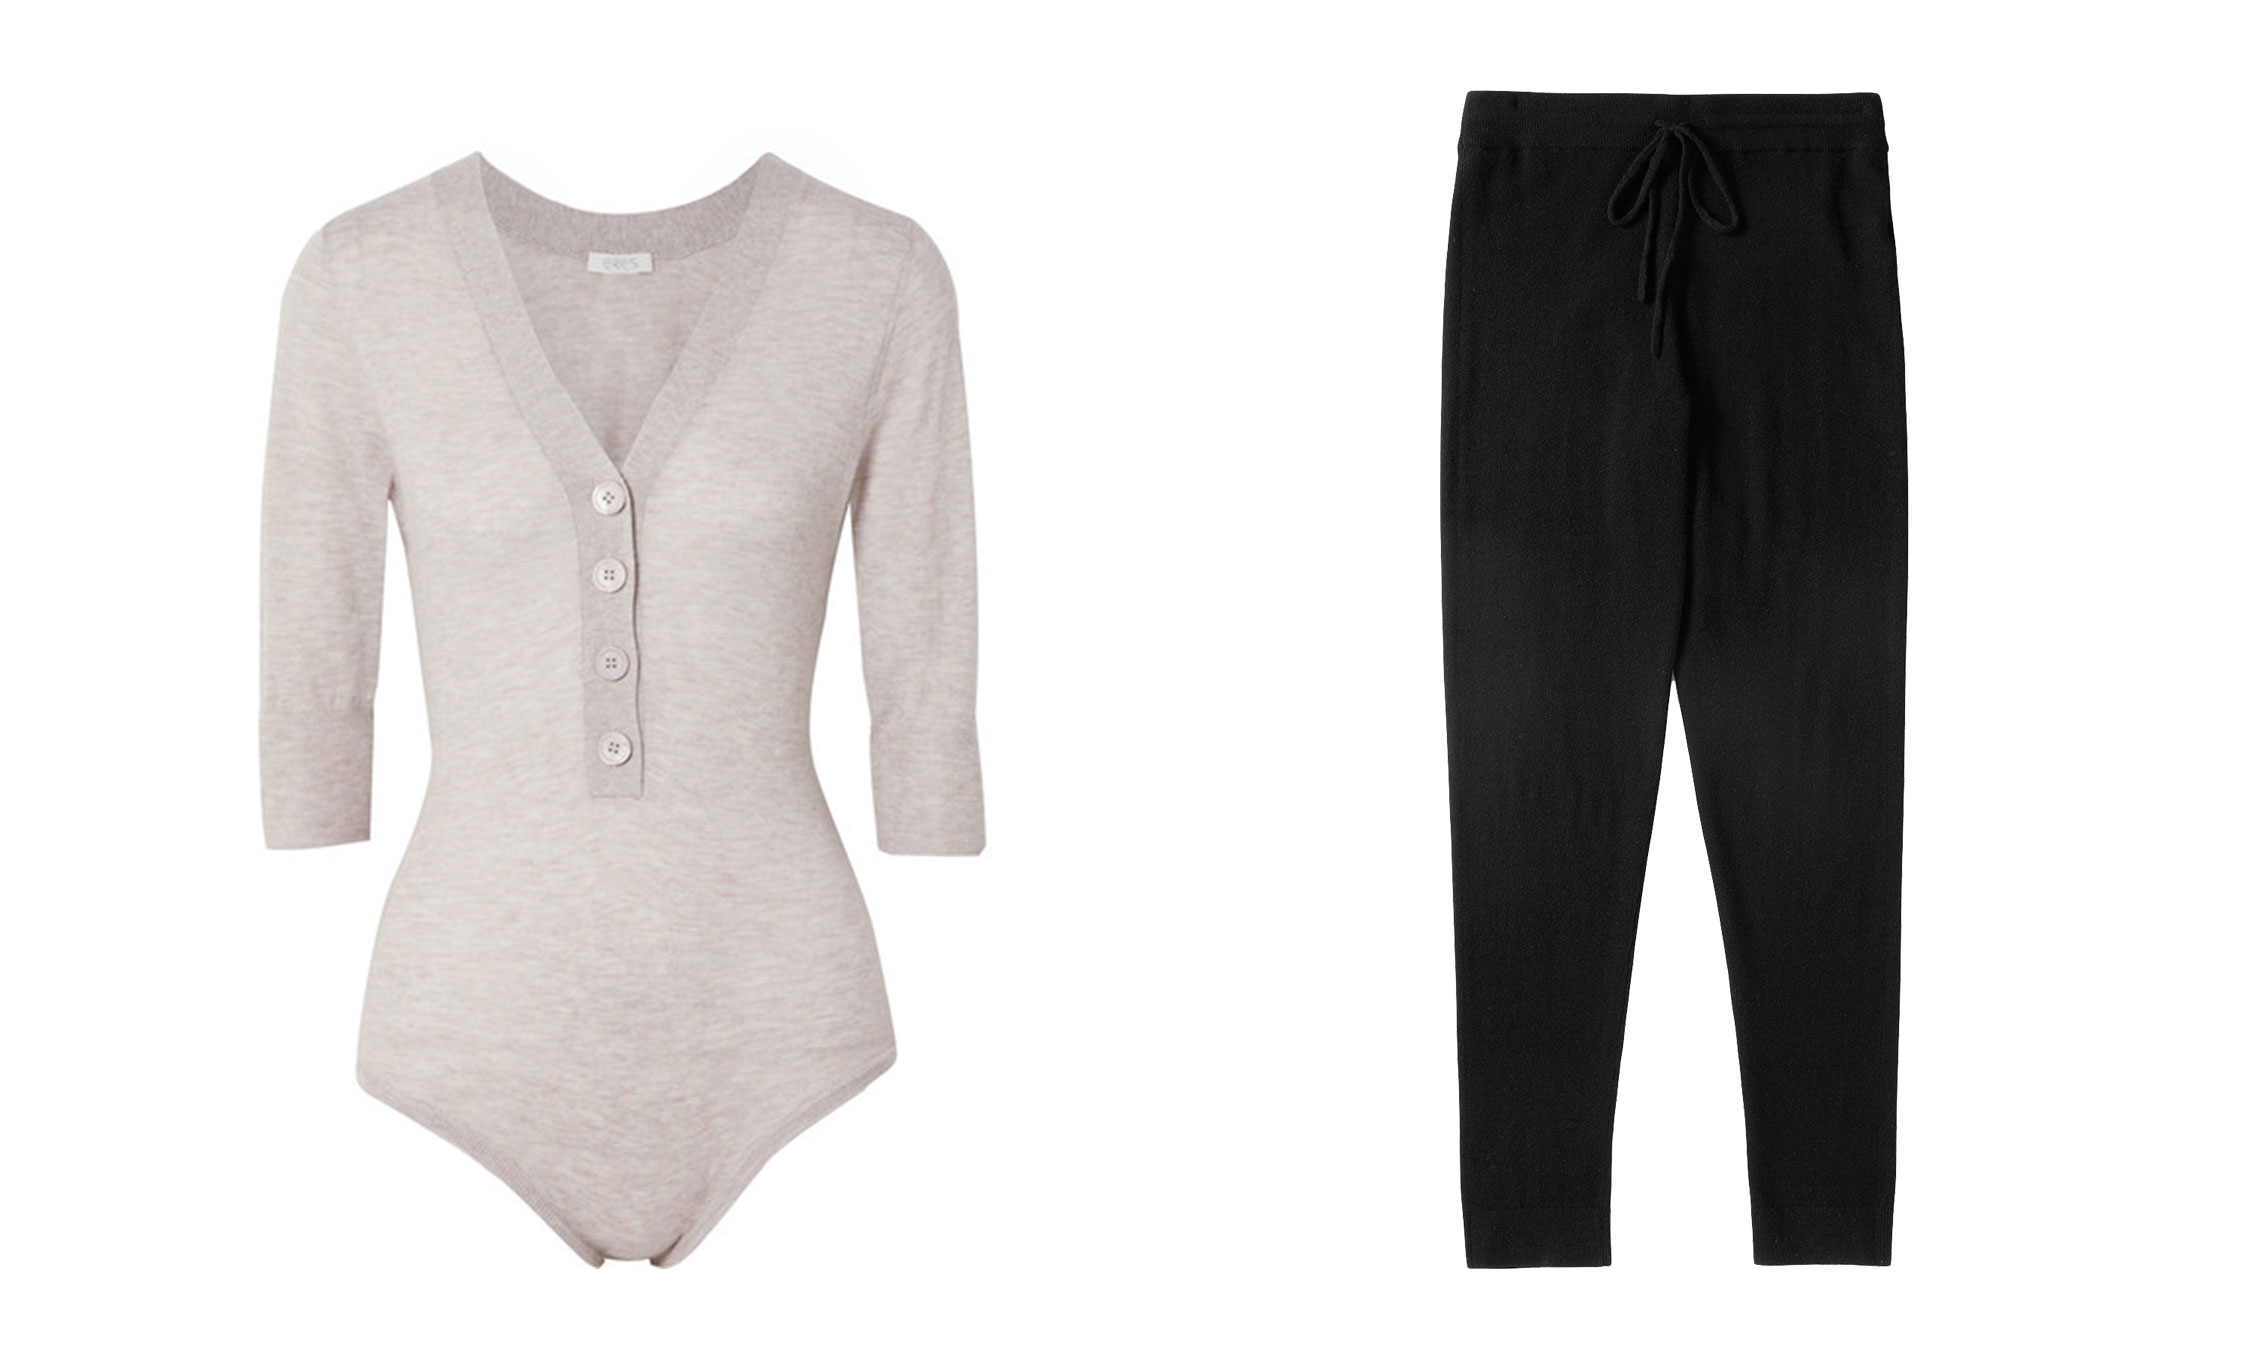 Eres Rituel Cashmere Bodysuit and Everlane Cashmere Sweatpant